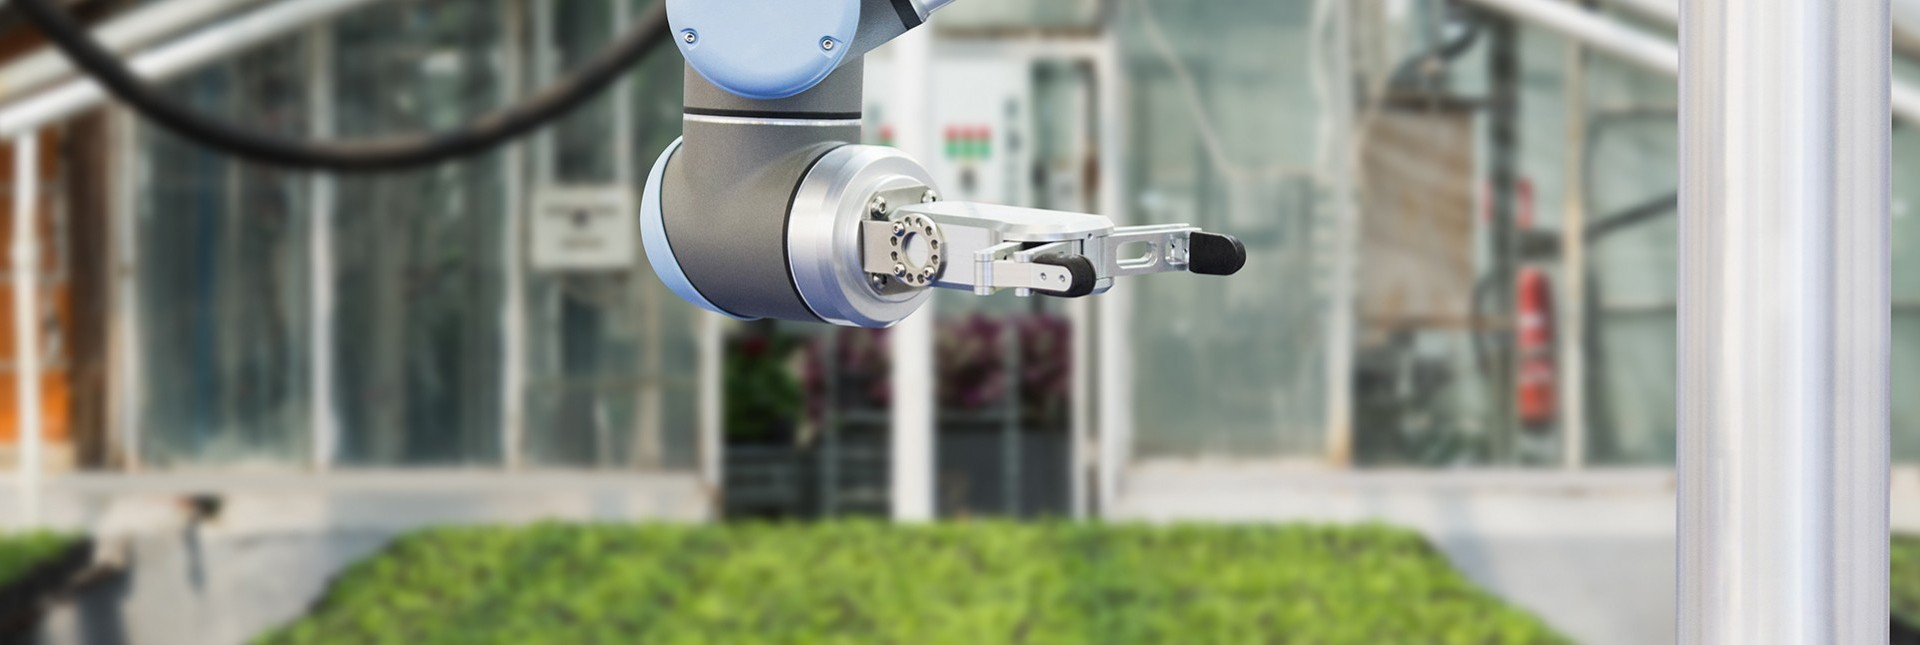 Agro Robots | Which Robots Actually Work On Farms?